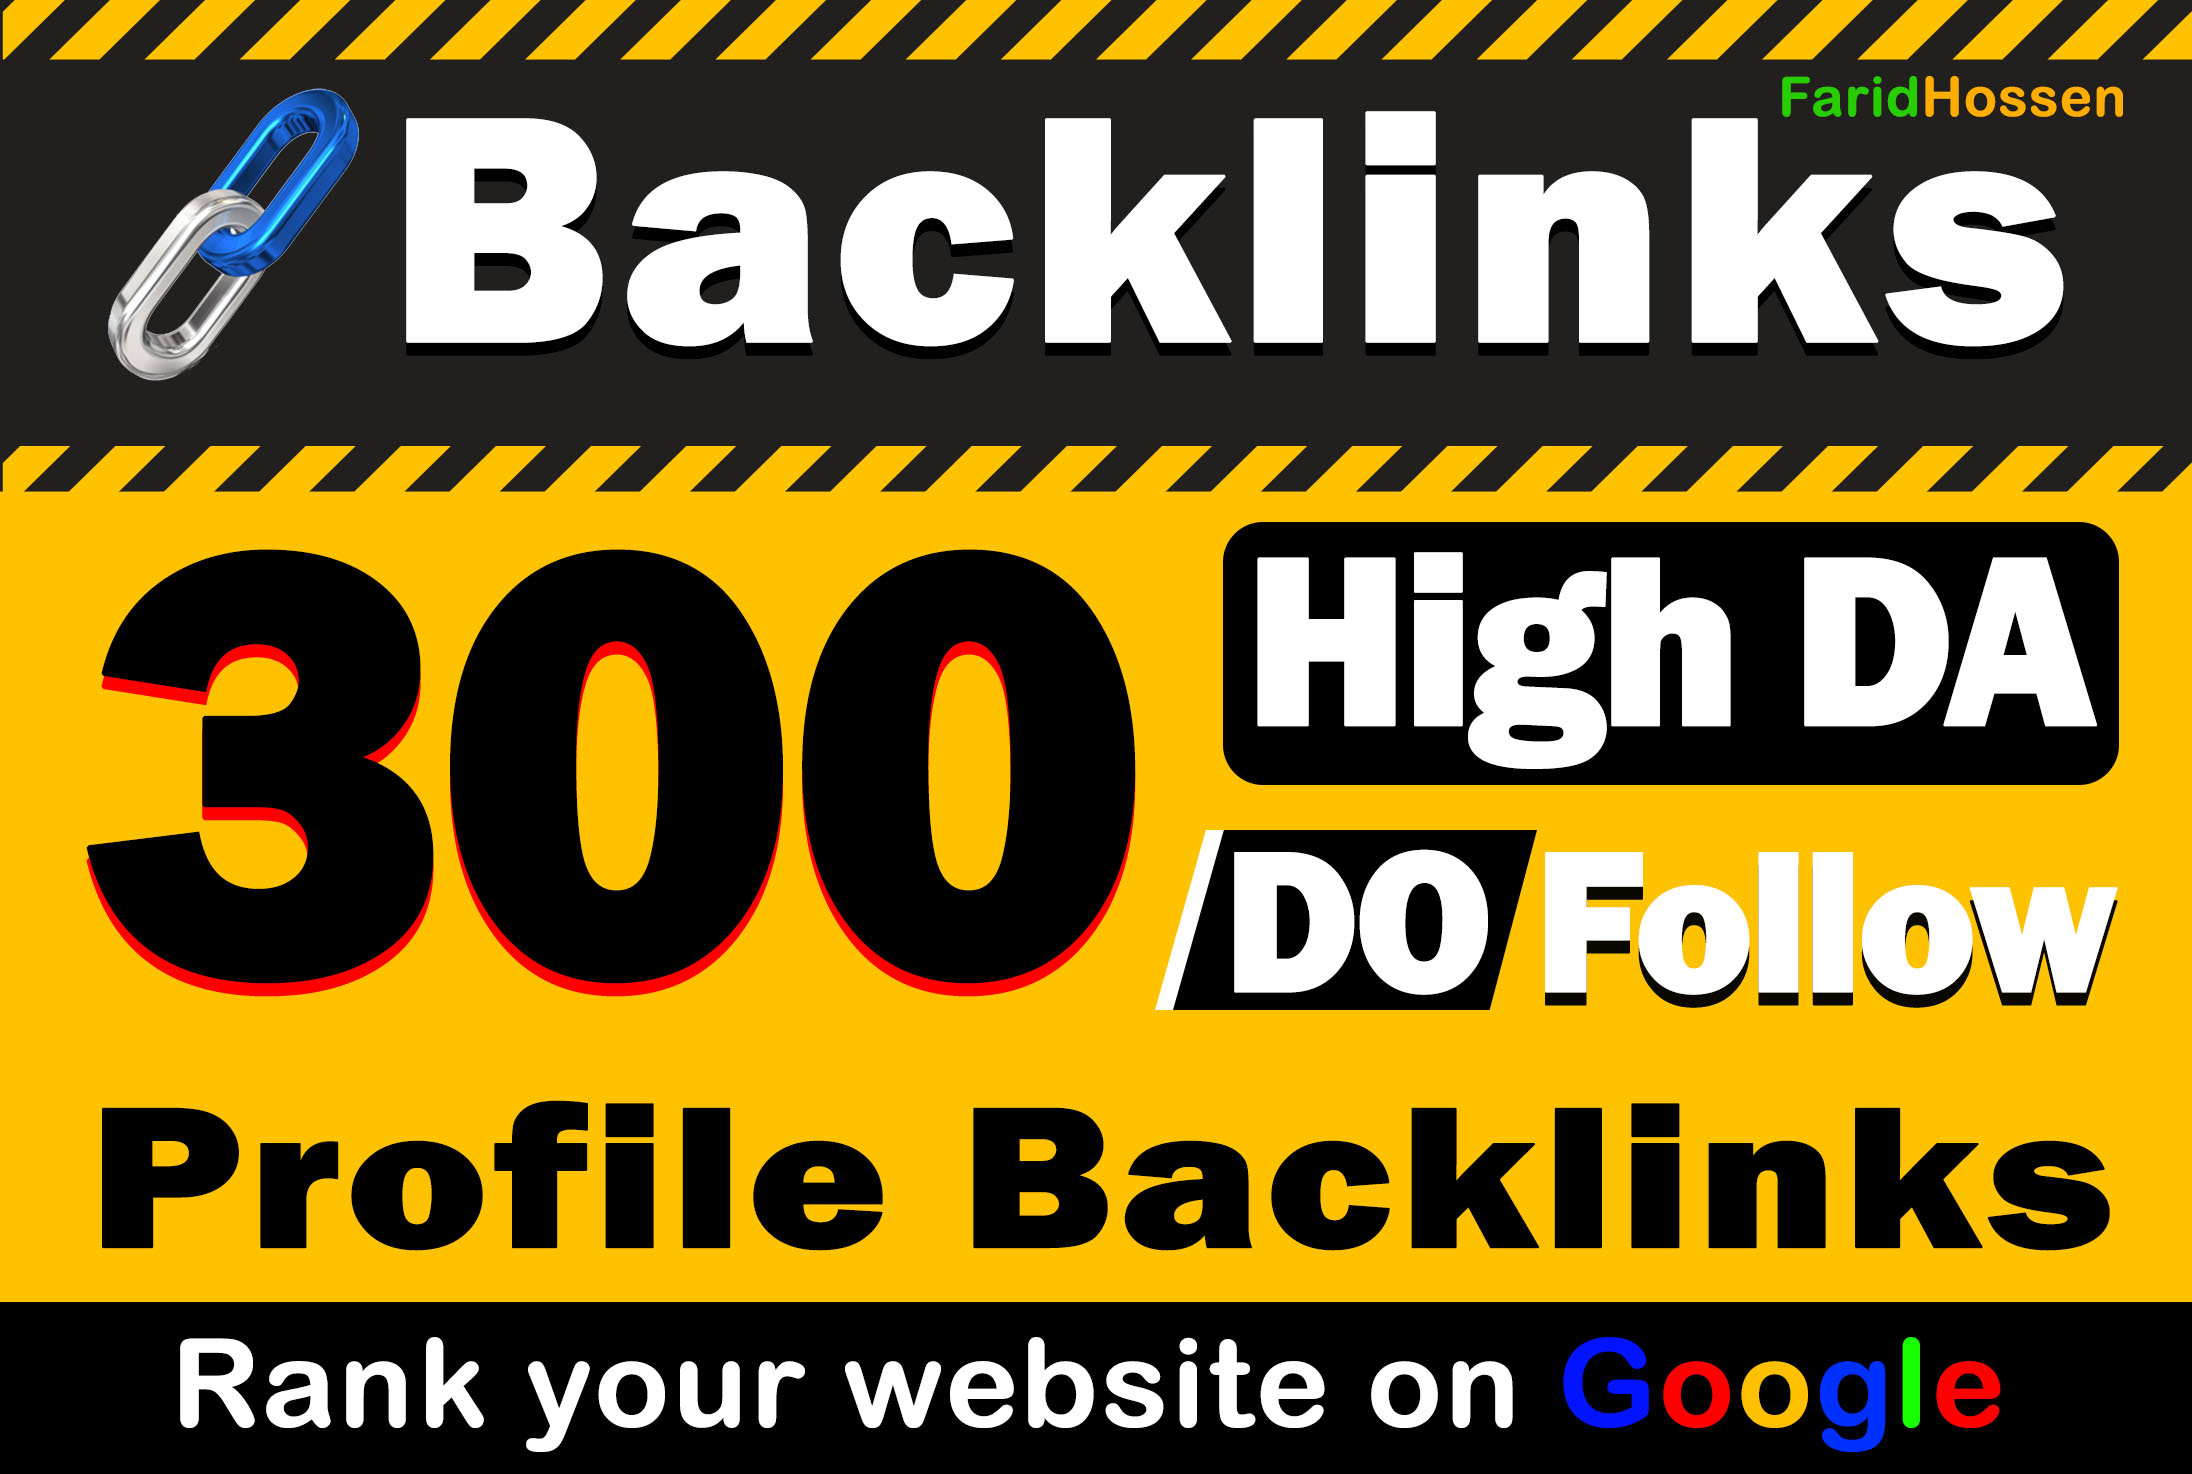 Manually 300 Profile Backlinks High DA, PA Permanent White Hat Method